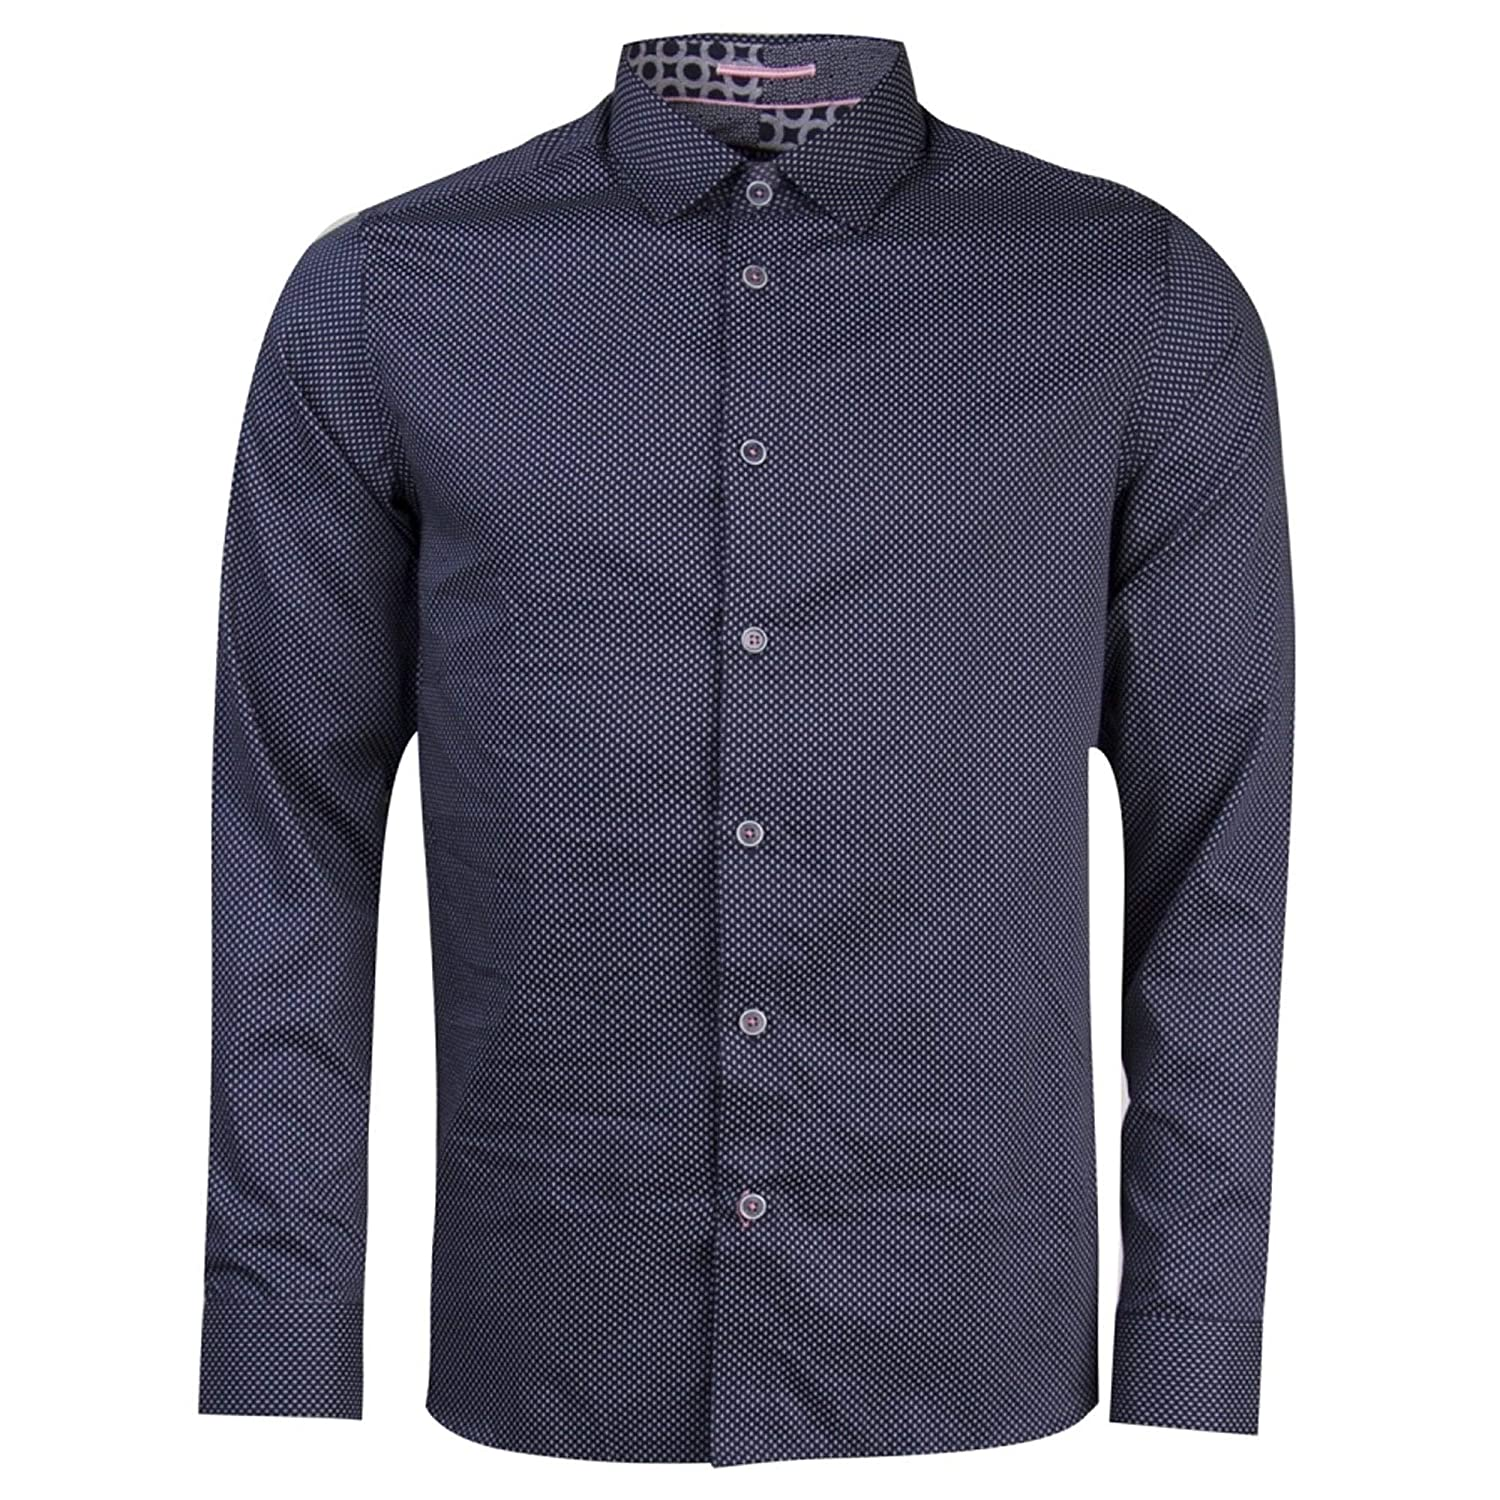 4f210ea4a Ted Baker Boomtwn L S Micro Geo Printed Shirt Navy Small (TED Size 2)   Amazon.co.uk  Clothing